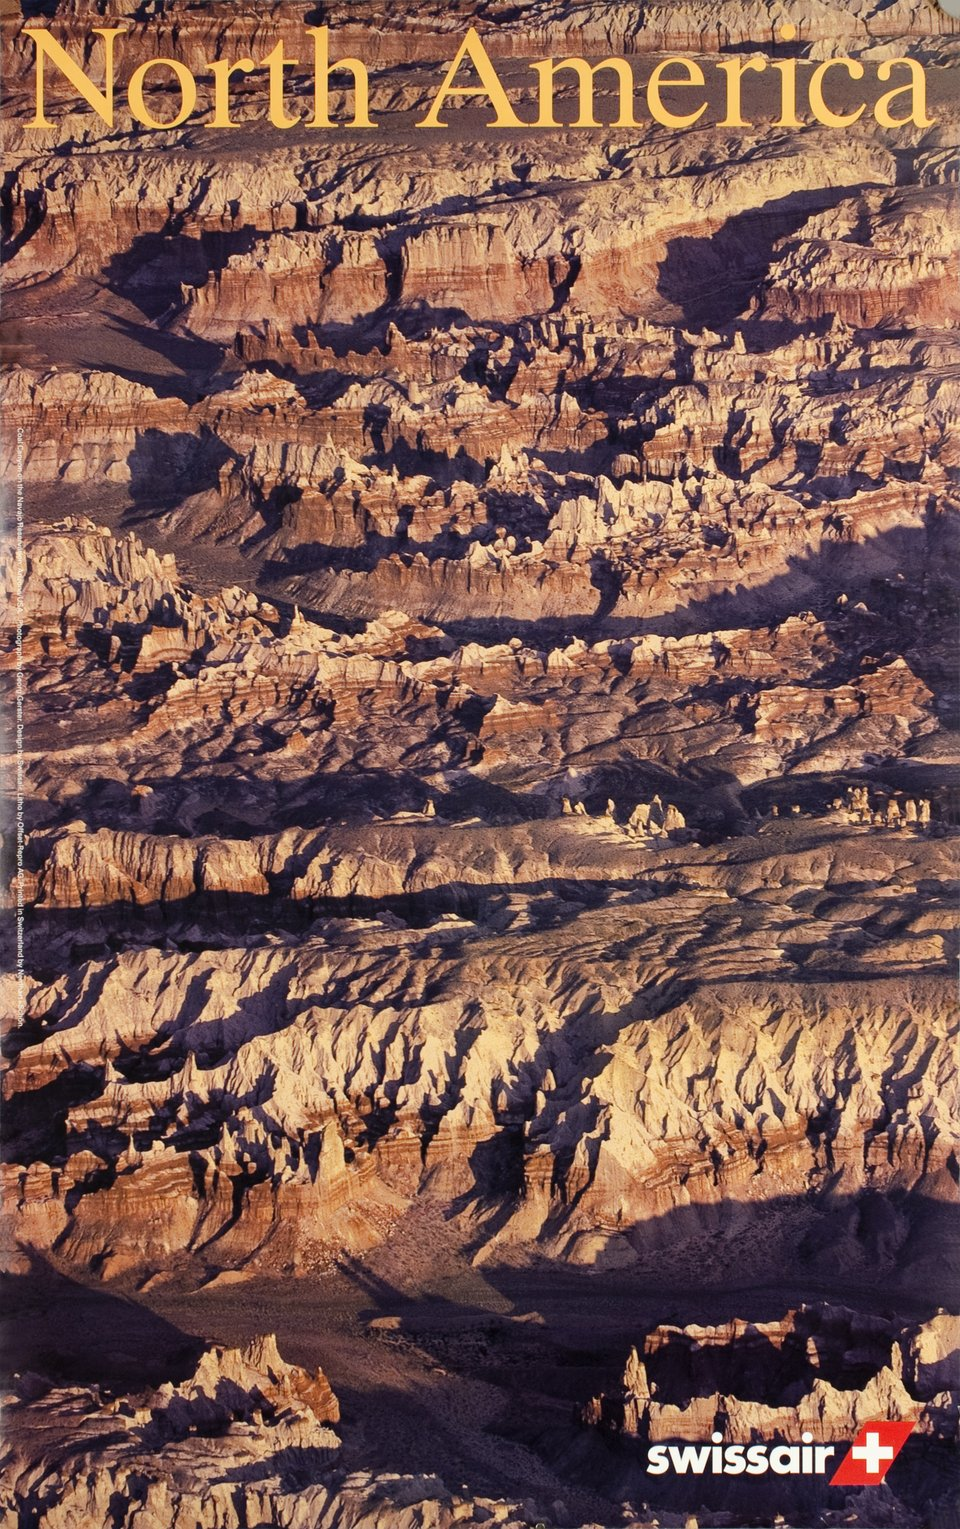 Swissair, North America, Coal Canyon of the Navajo Reservation, Arizona, USA – Vintage poster – Georg GERSTER, Emil SCHULTHESS – 1996